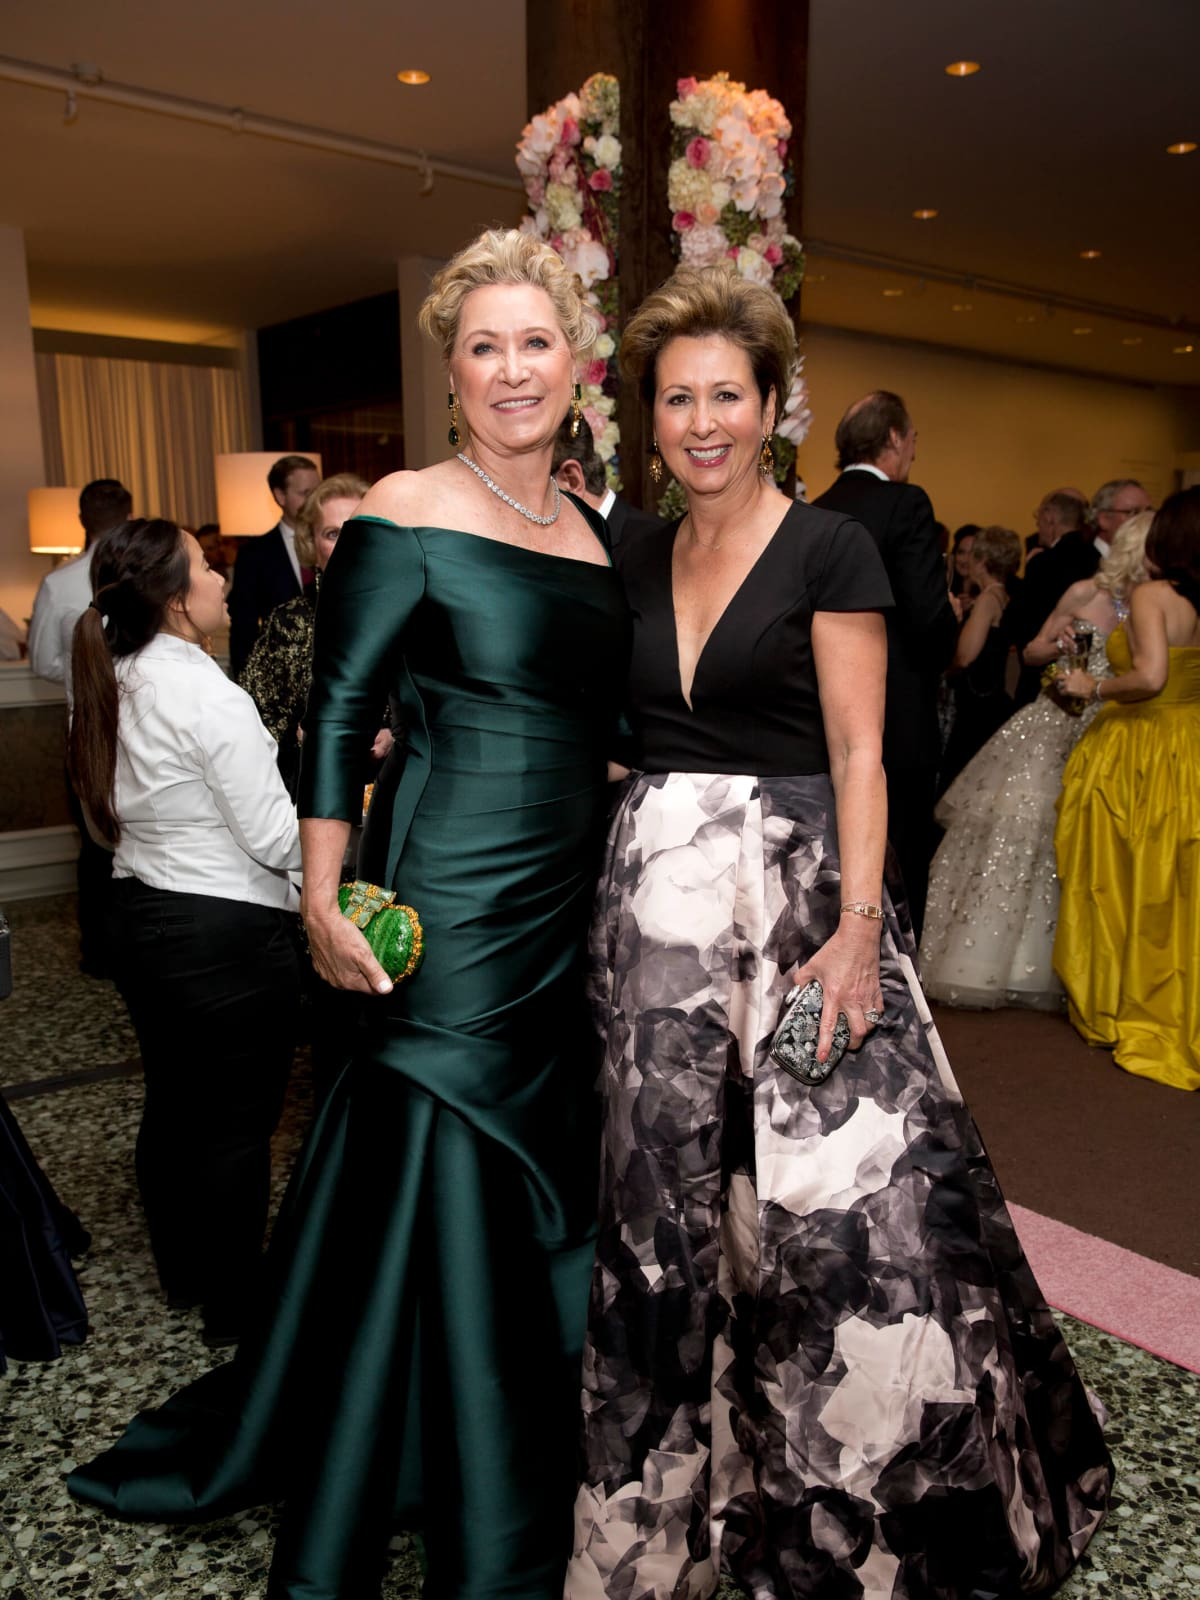 Carol Linn, Ileana Trevino at Museum of Fine Arts Grand Gala Ball